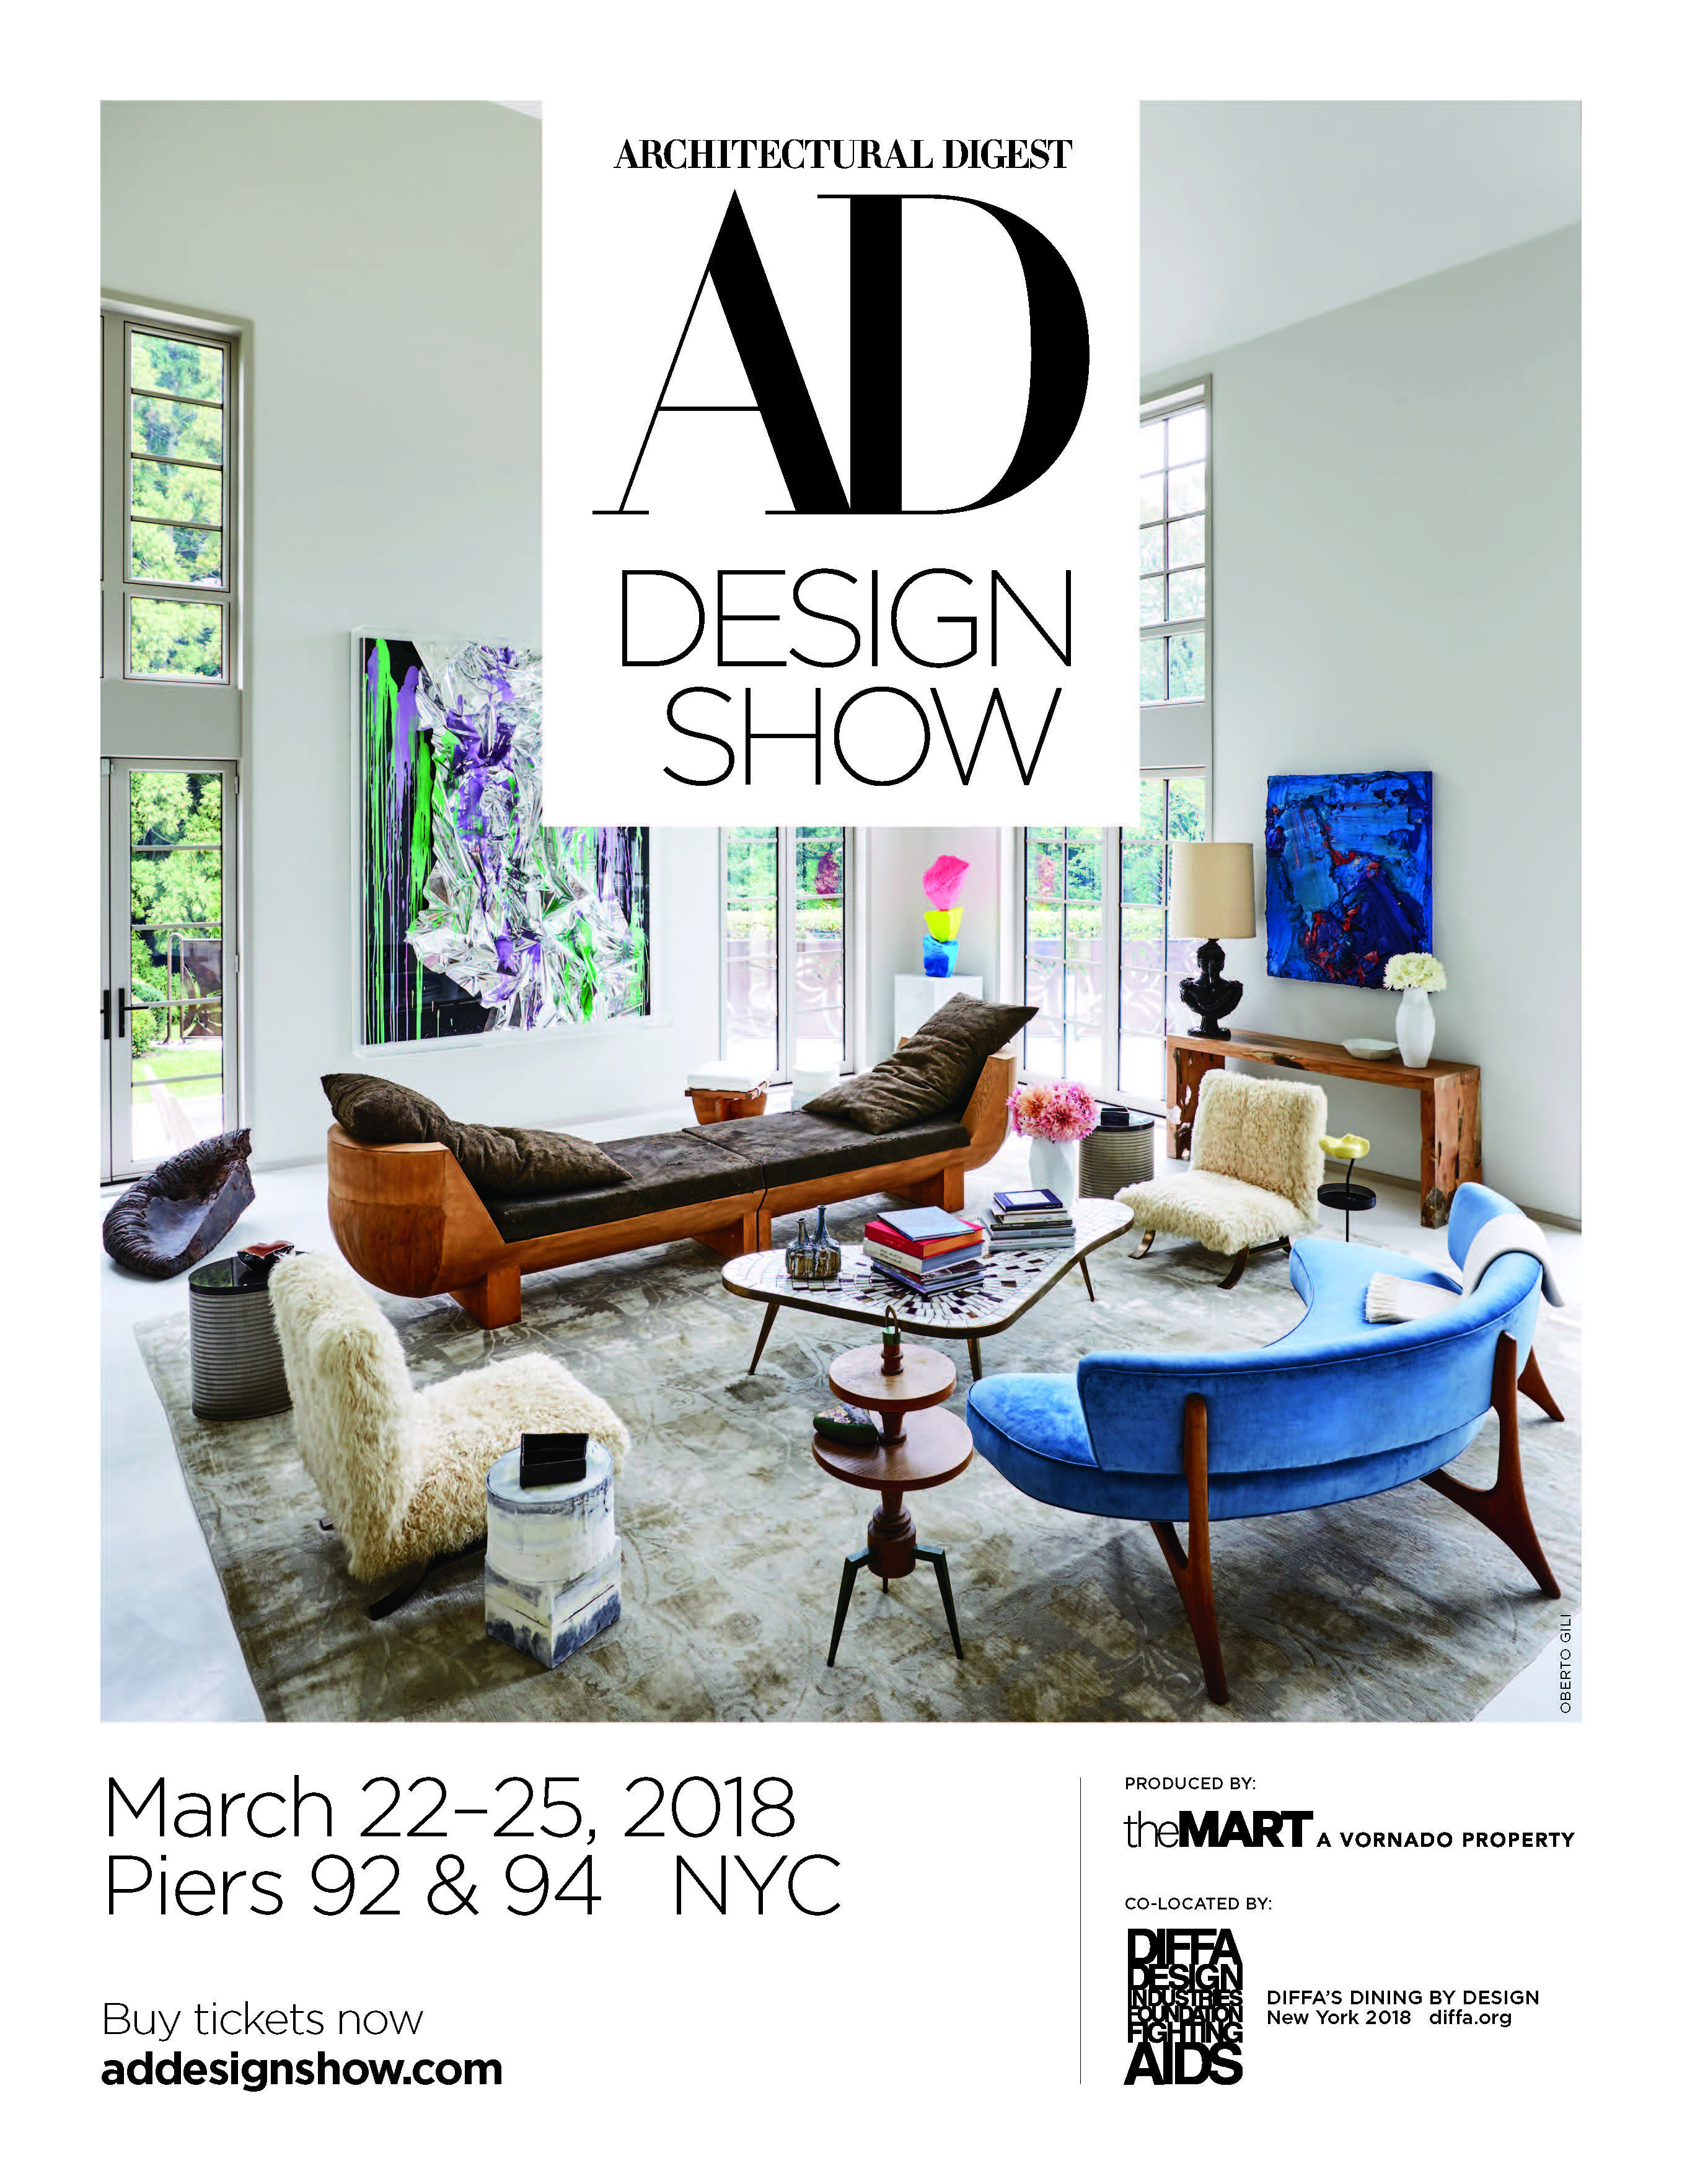 Fullsize Of Architectural Digest Show Large Of Architectural Digest Show ...